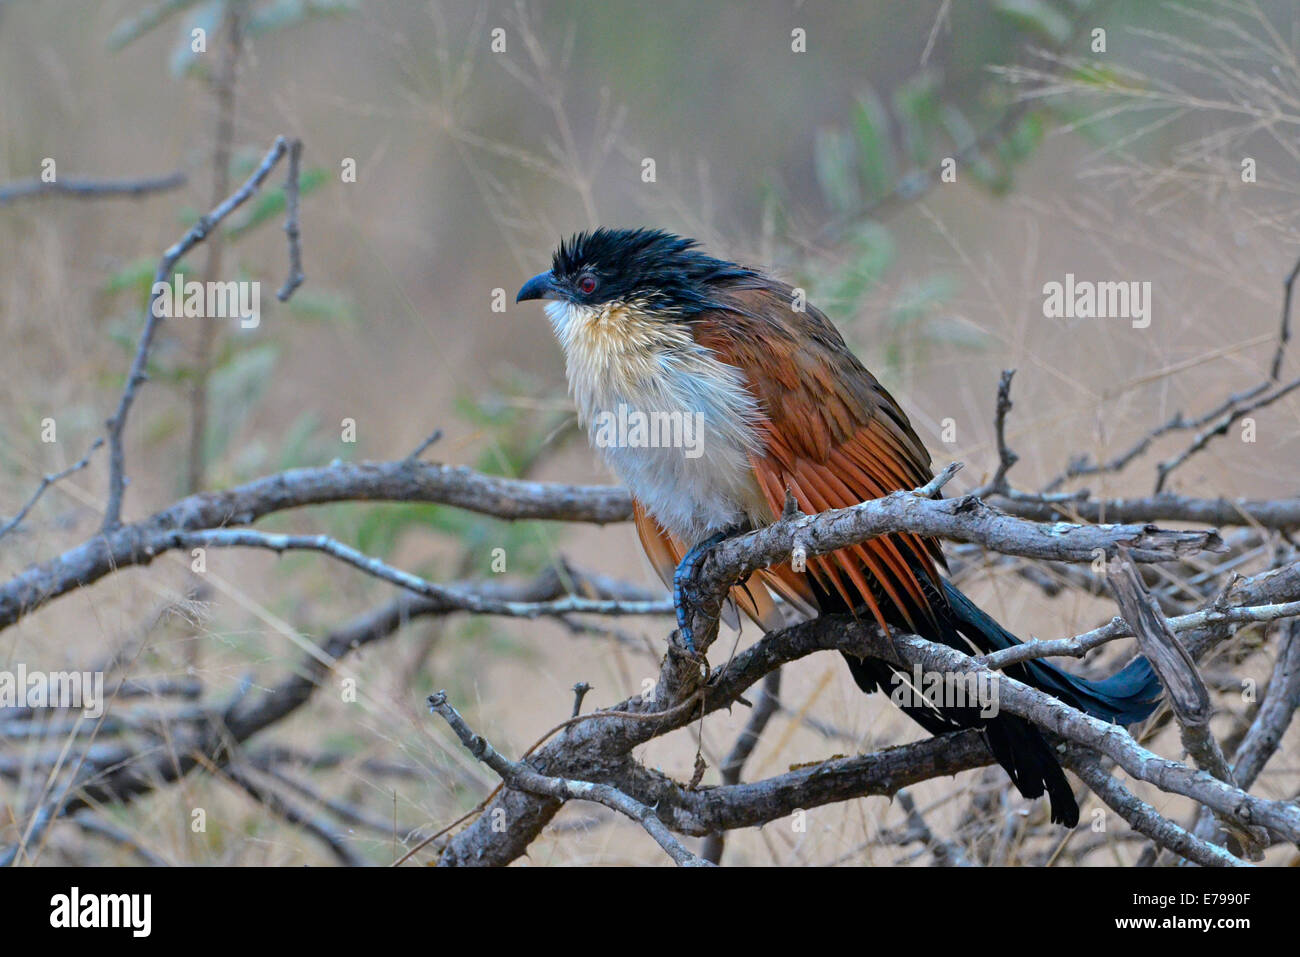 Wet burchell's coucal slumped on a branch in Kruger National Park, South Africa - Stock Image